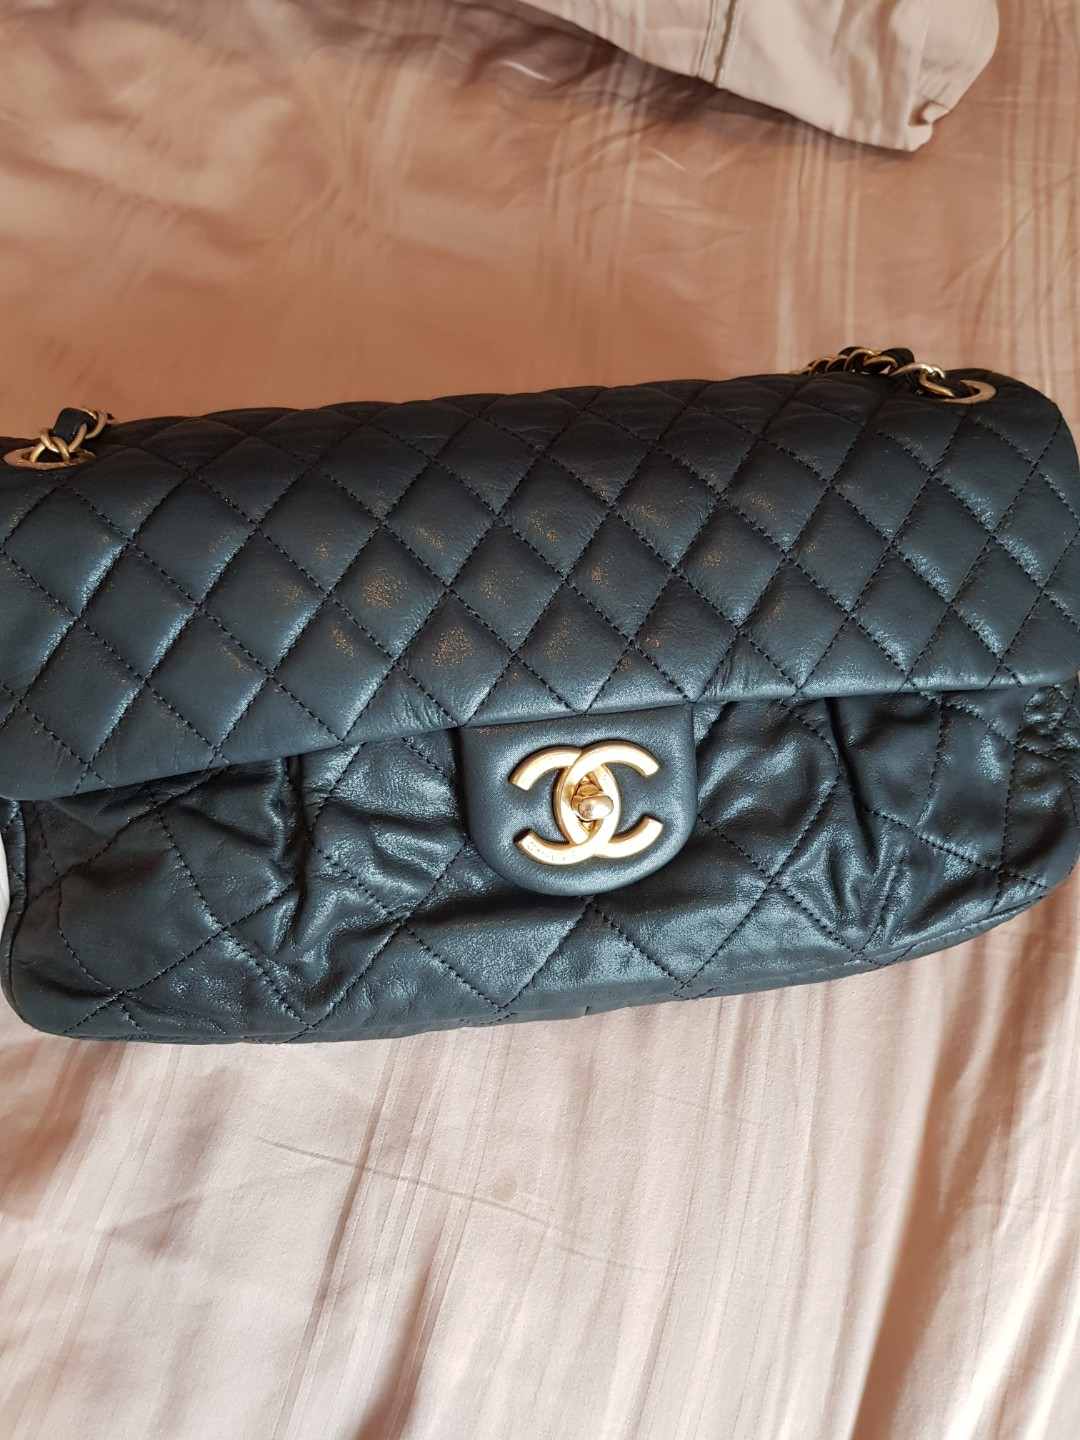 7cf6e1dee8e994 Chanel Flap Bag - Quilted leather - limited edition, Luxury, Bags ...